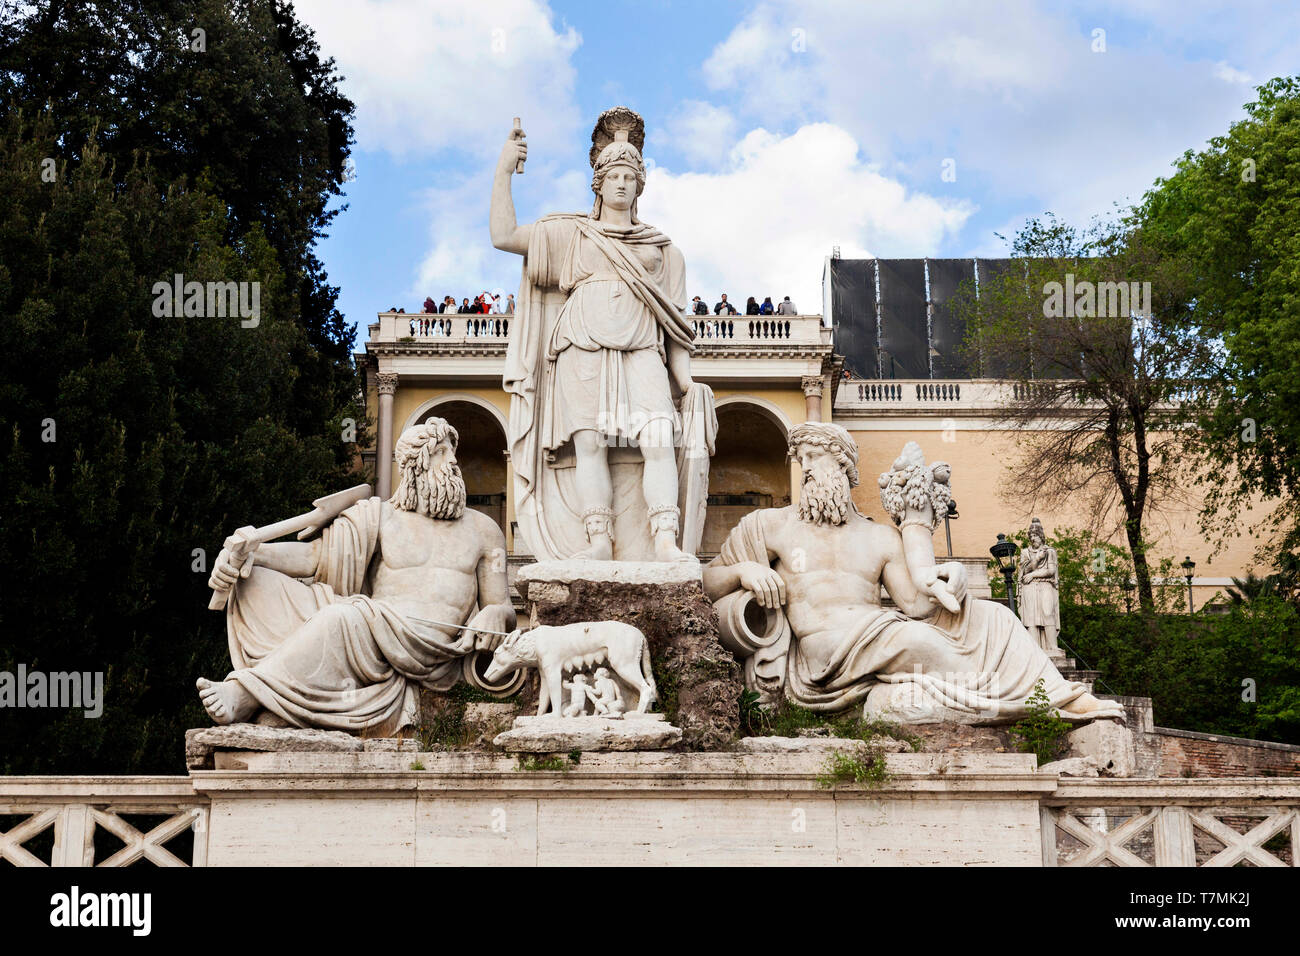 Statue of the She-Wolf Nursing Romulus and Remus in the Piazza del Popolo,Rome, Italy - Stock Image